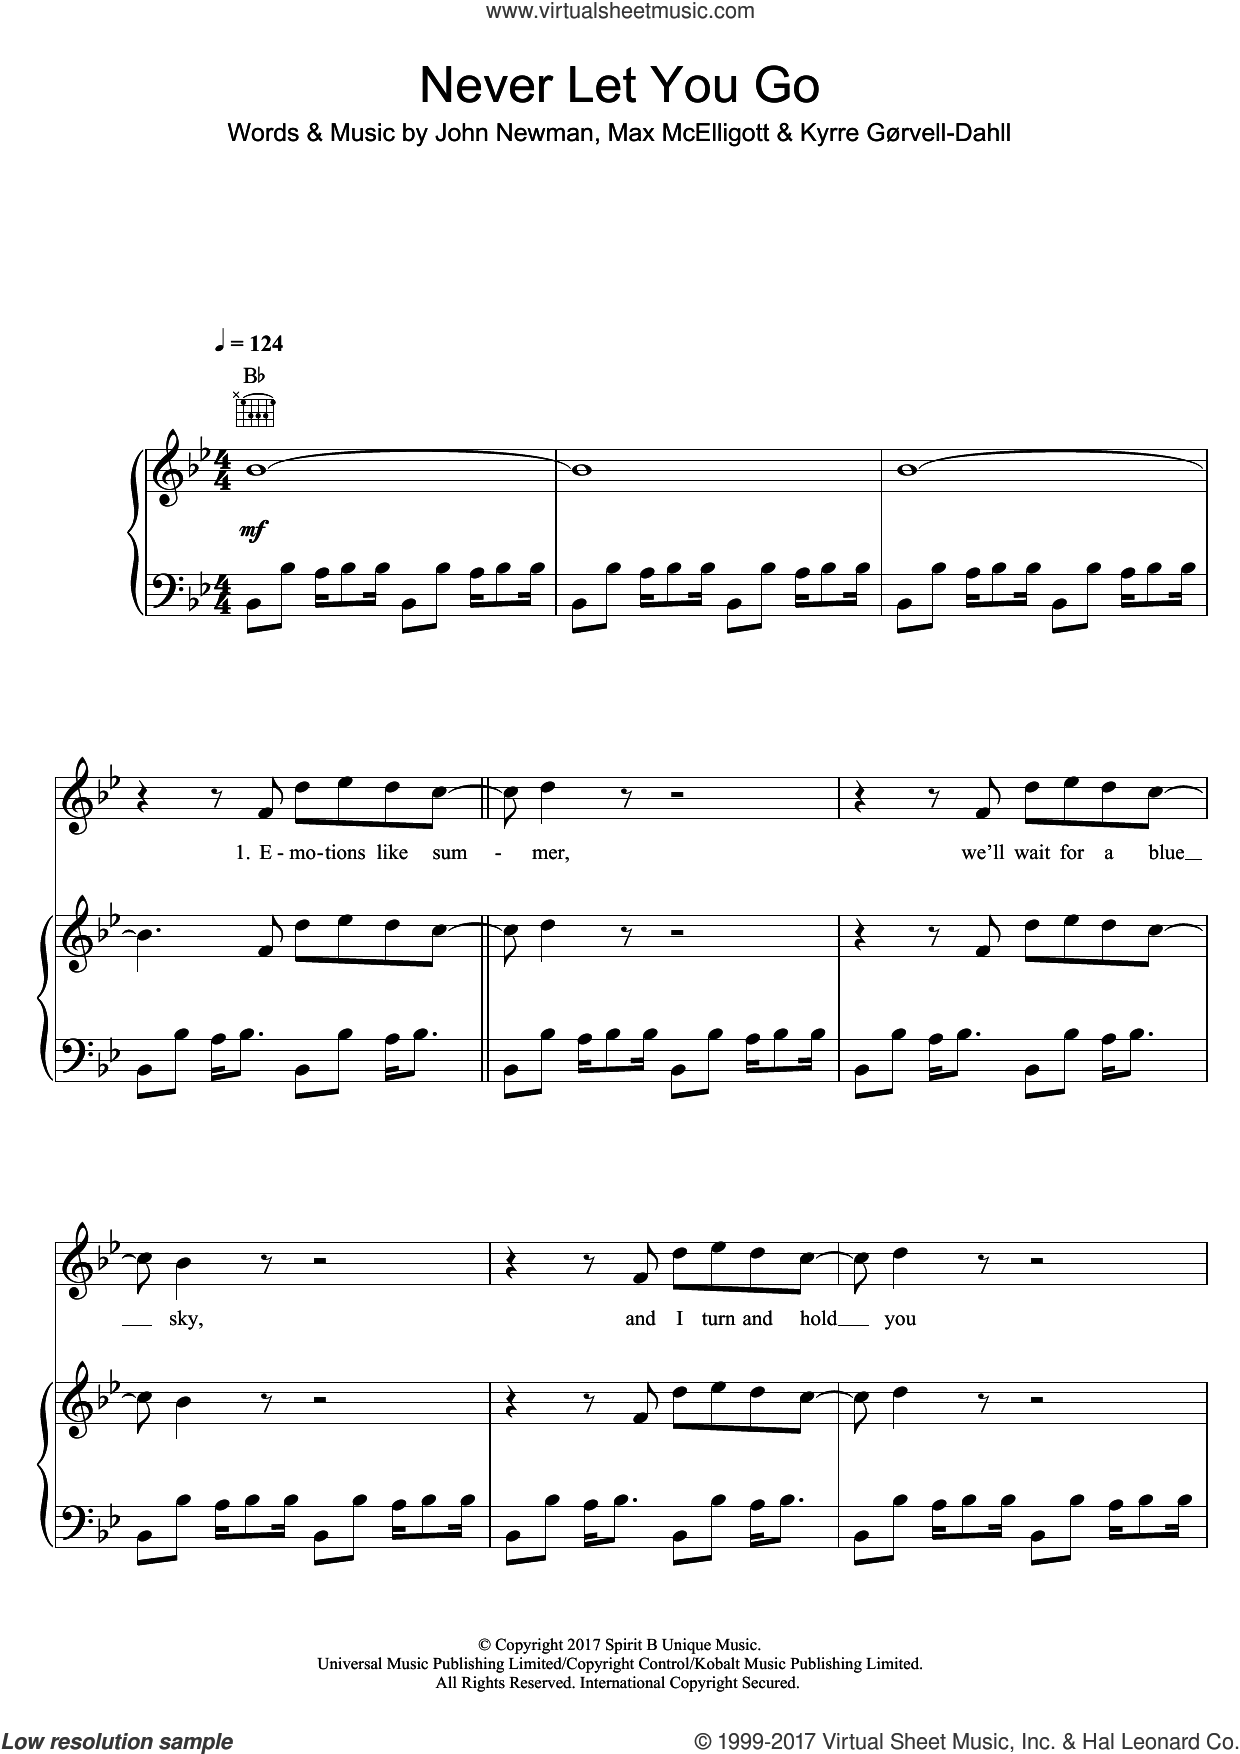 Never Let You Go (featuring John Newman) sheet music for voice, piano or guitar by Kygo, John Newman, Kyrre Gørvell-Dahll, Kyrre Gorvell-Dahll and Max McElligott, intermediate skill level